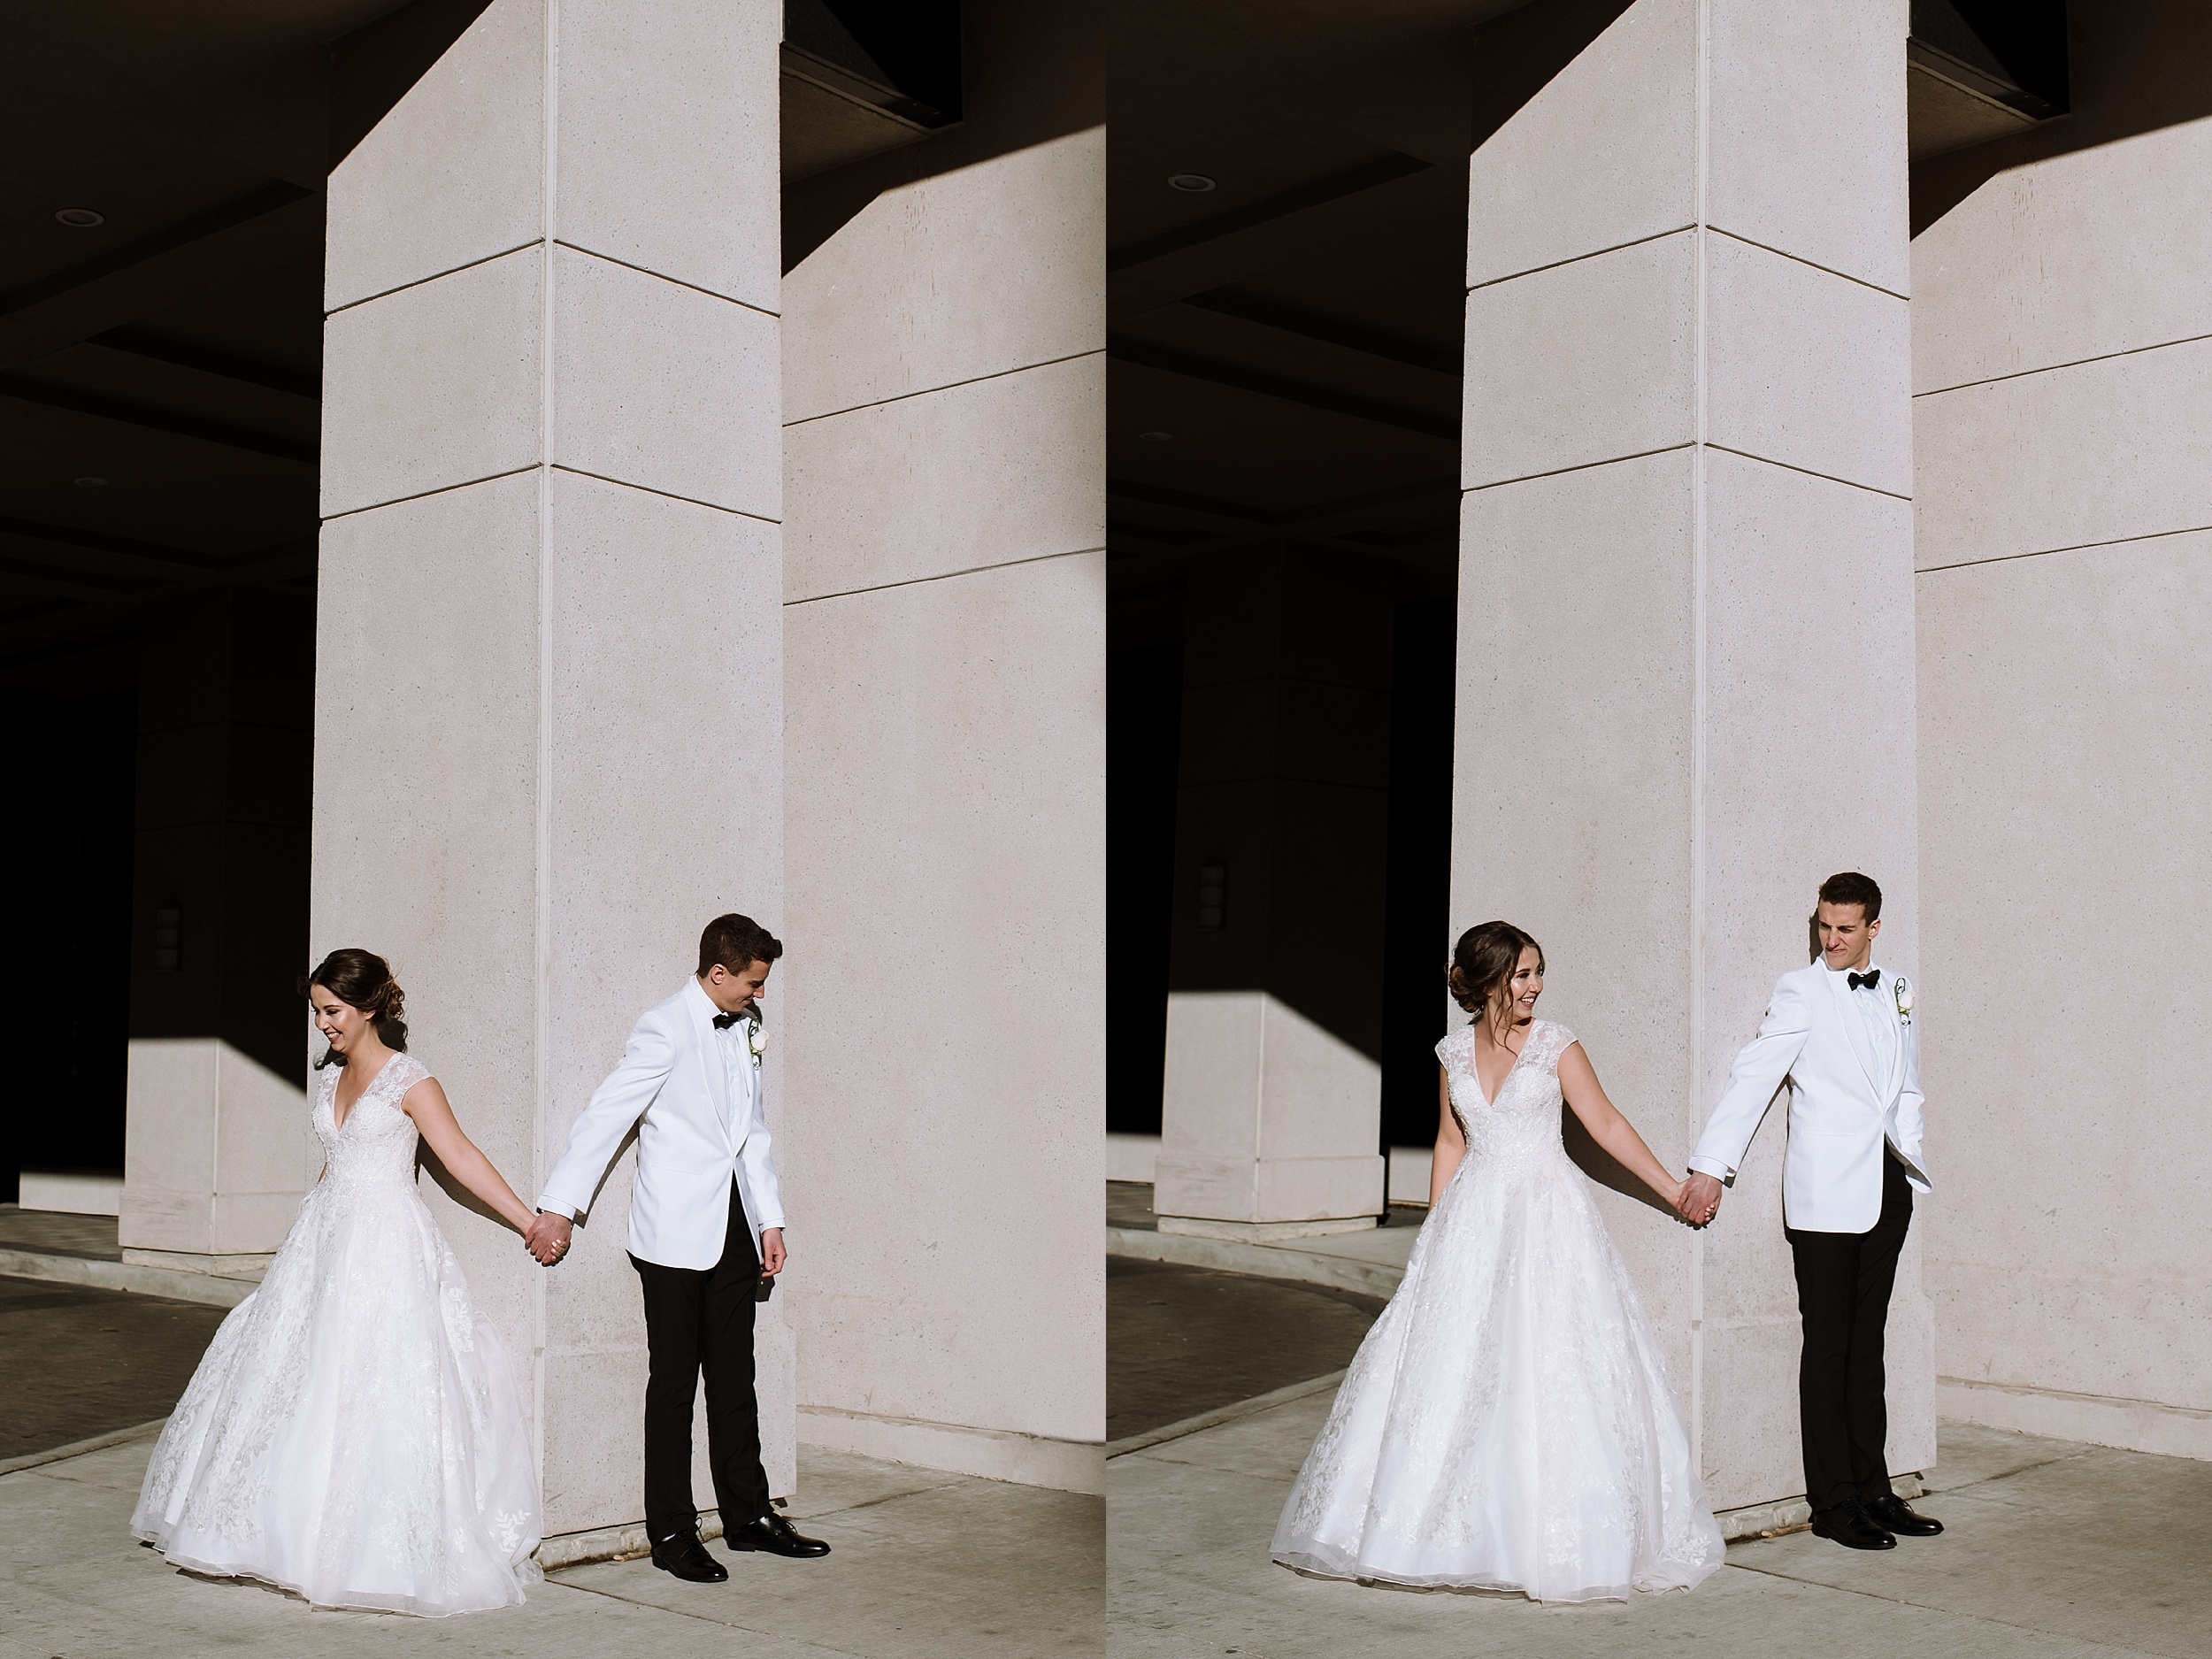 Jam_Factory_Wedding_Toronto_Winter_Wedding_Photographer_0008.jpg